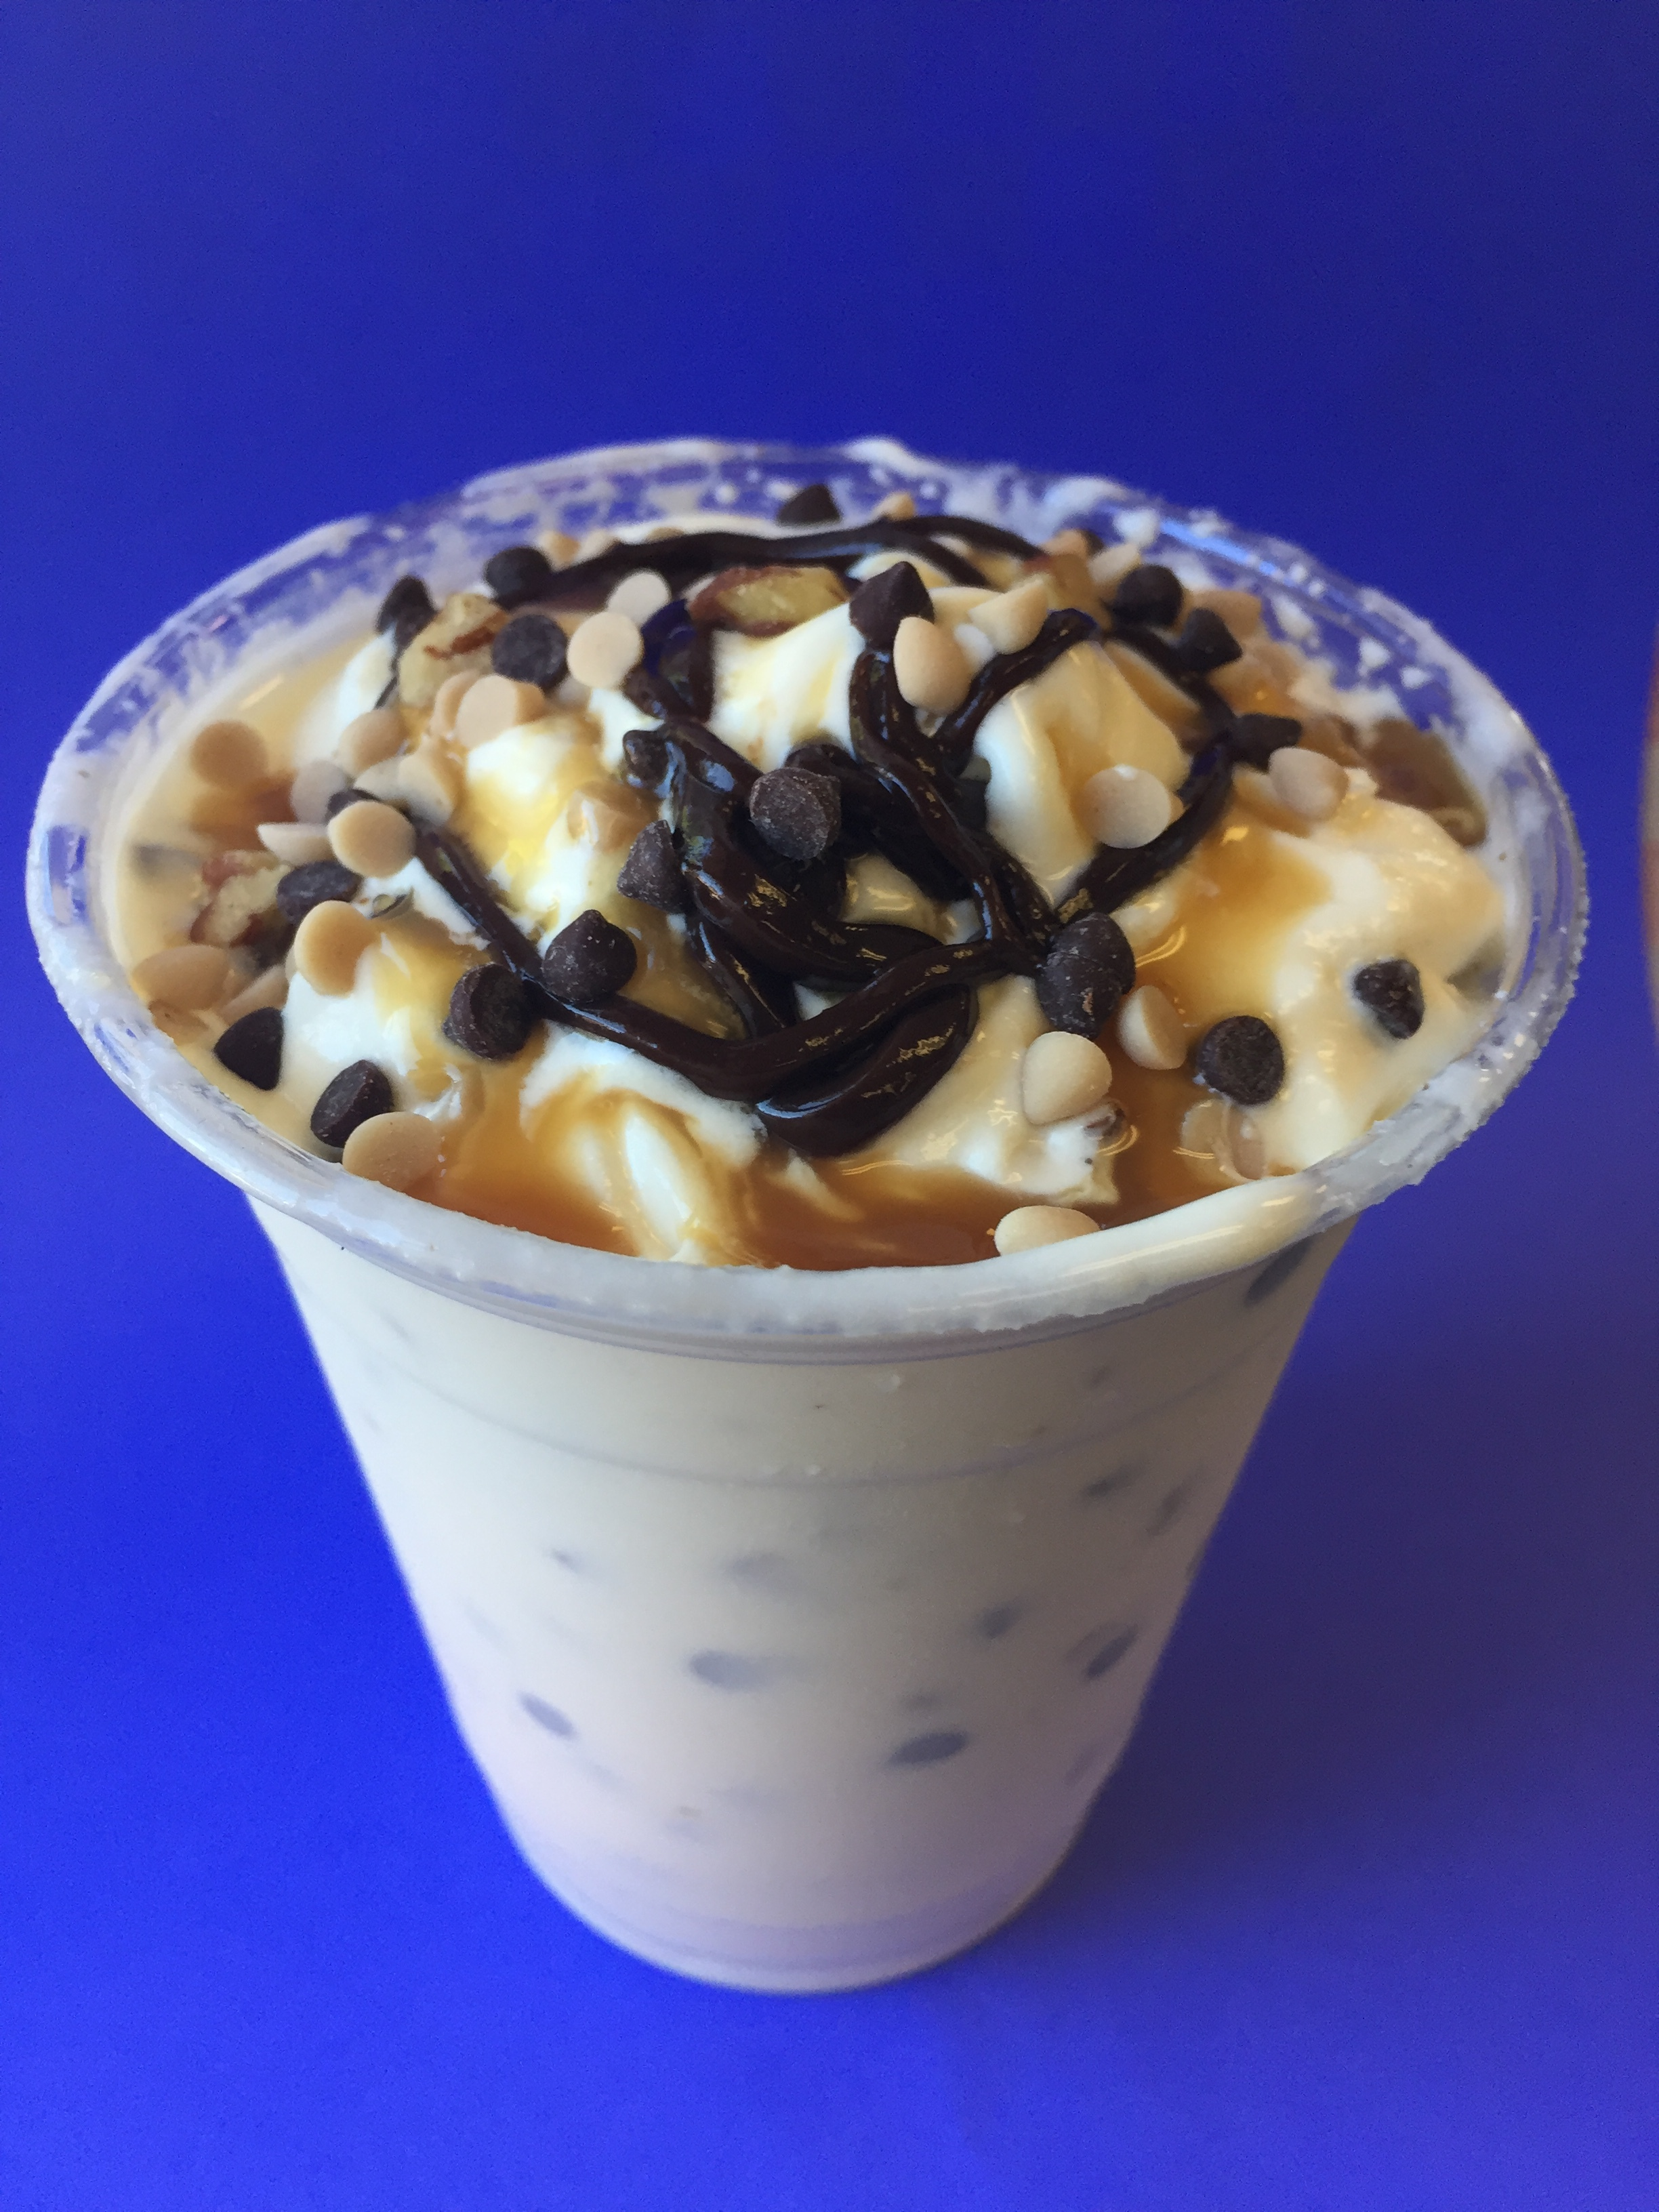 Concretes - Our frozen custard ice cream with delicious sauces and mix-ins!